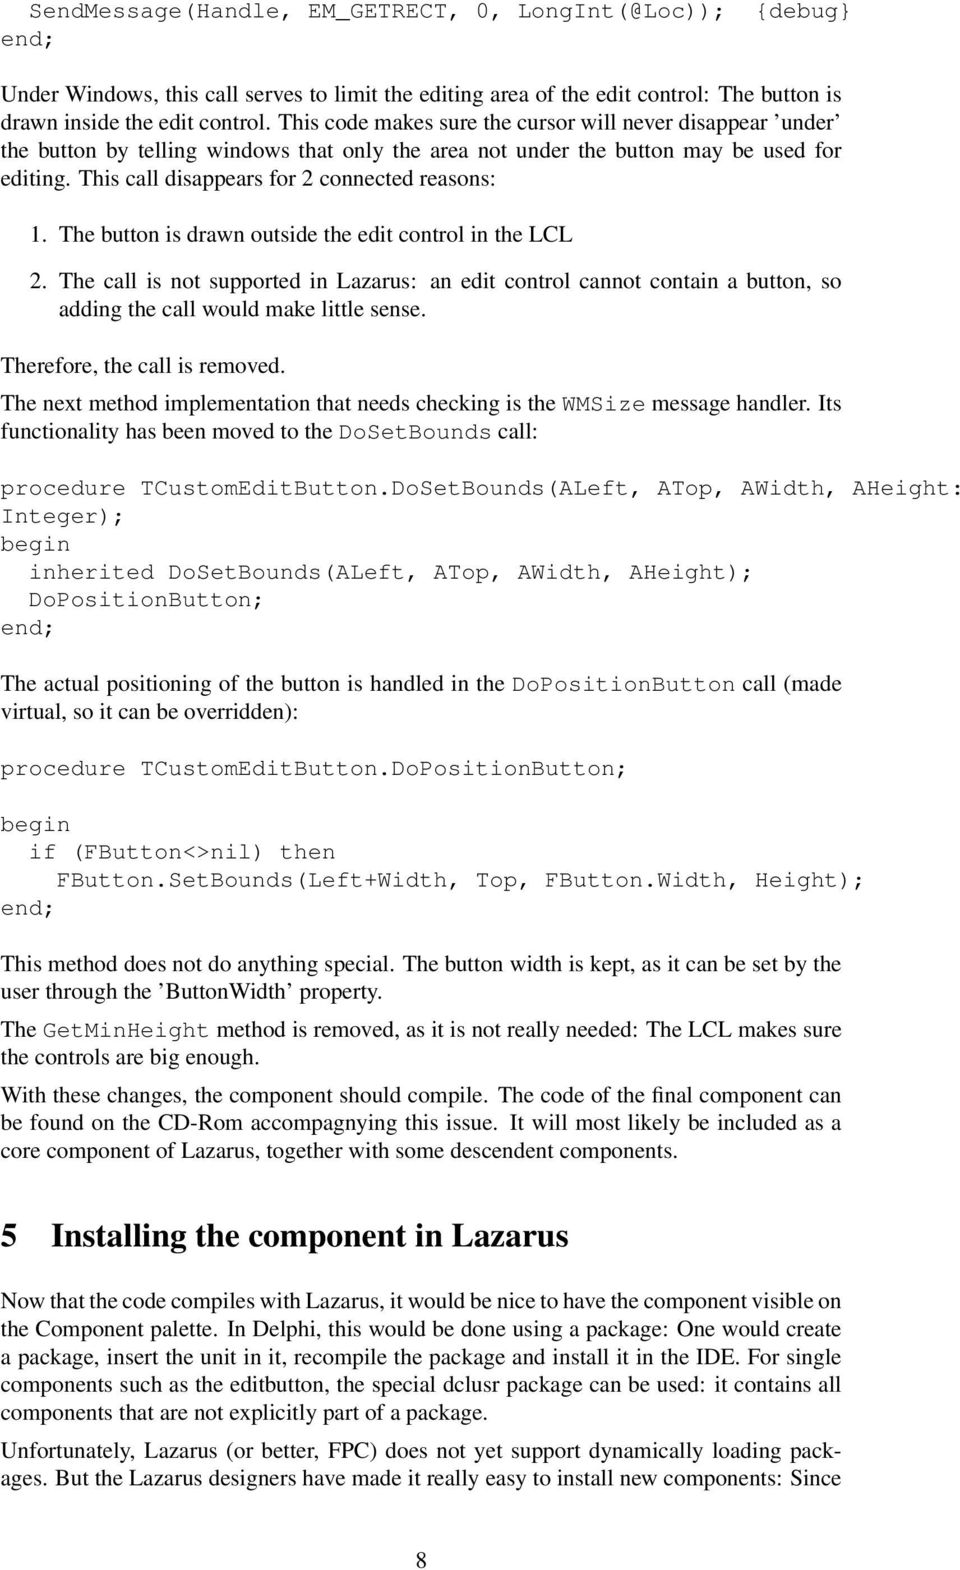 1 Porting Delphi Components to Lazarus - PDF